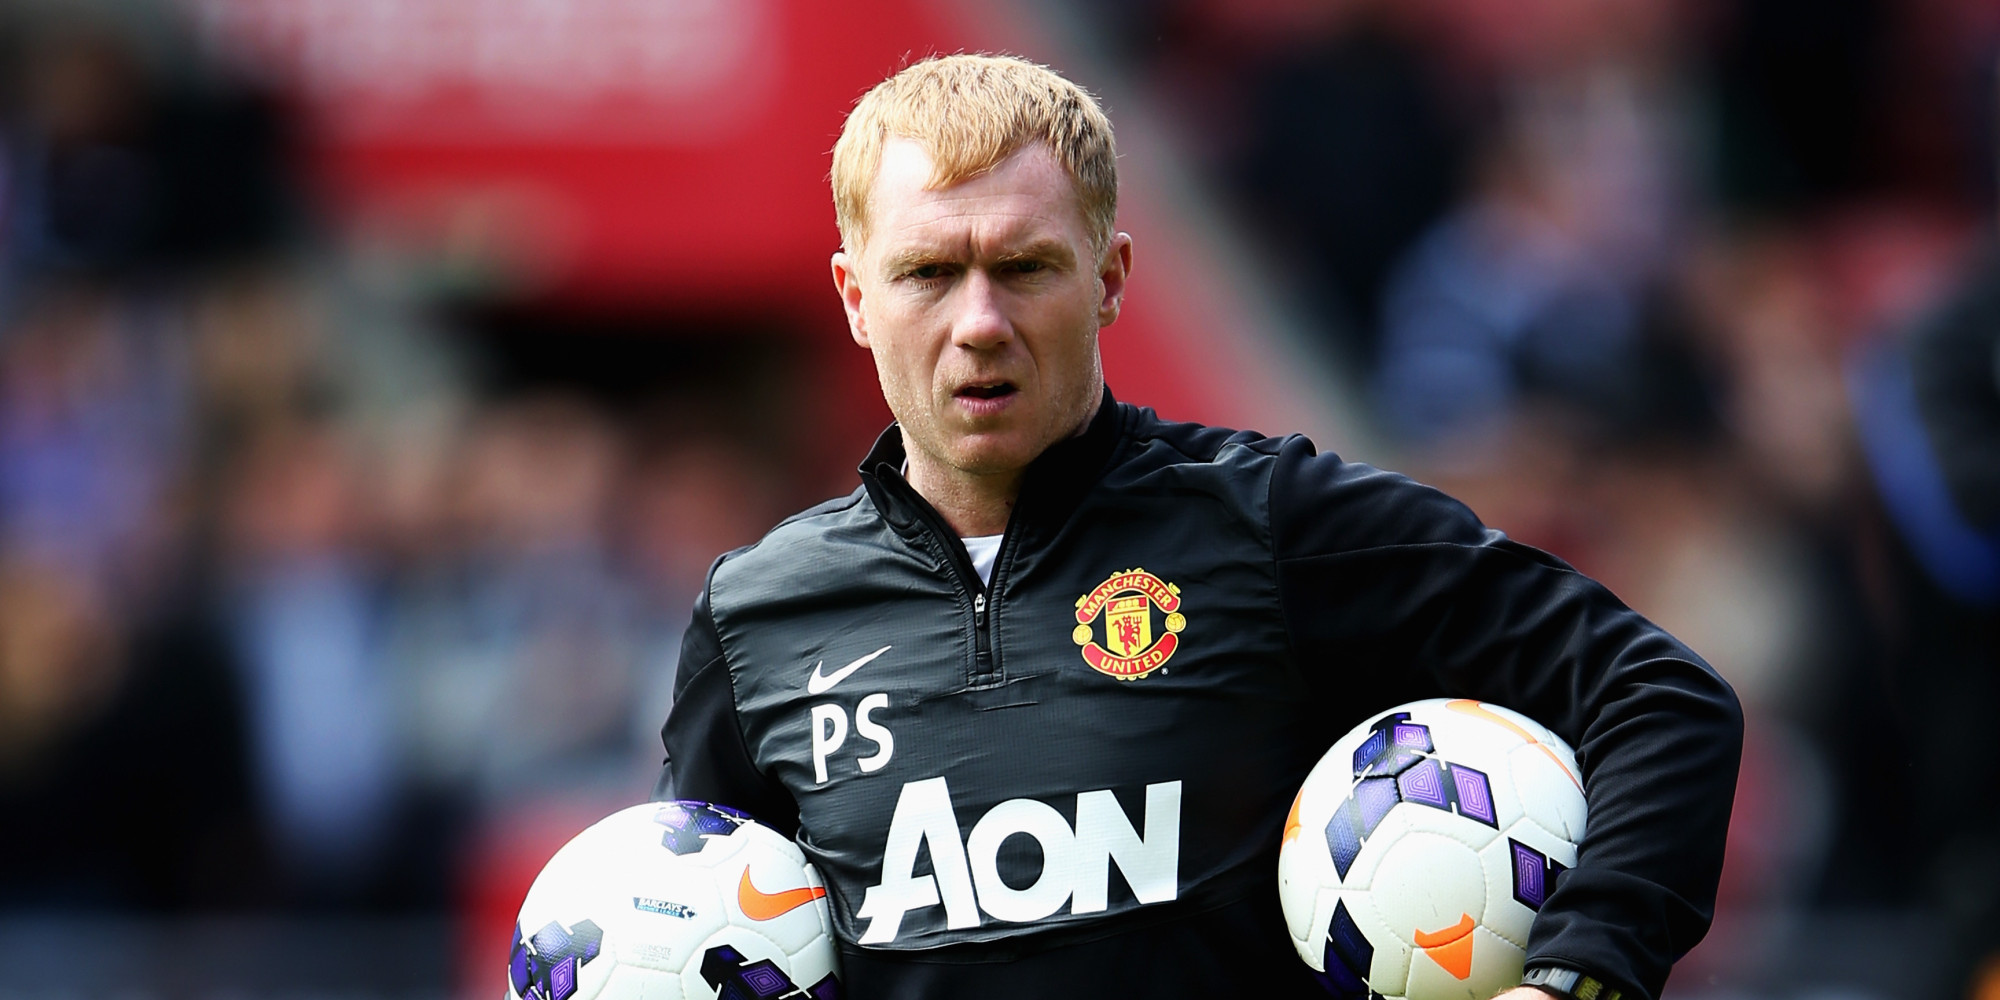 Paul Scholes: Paul Scholes: Manchester United Hasn't Spoken To Louis Van